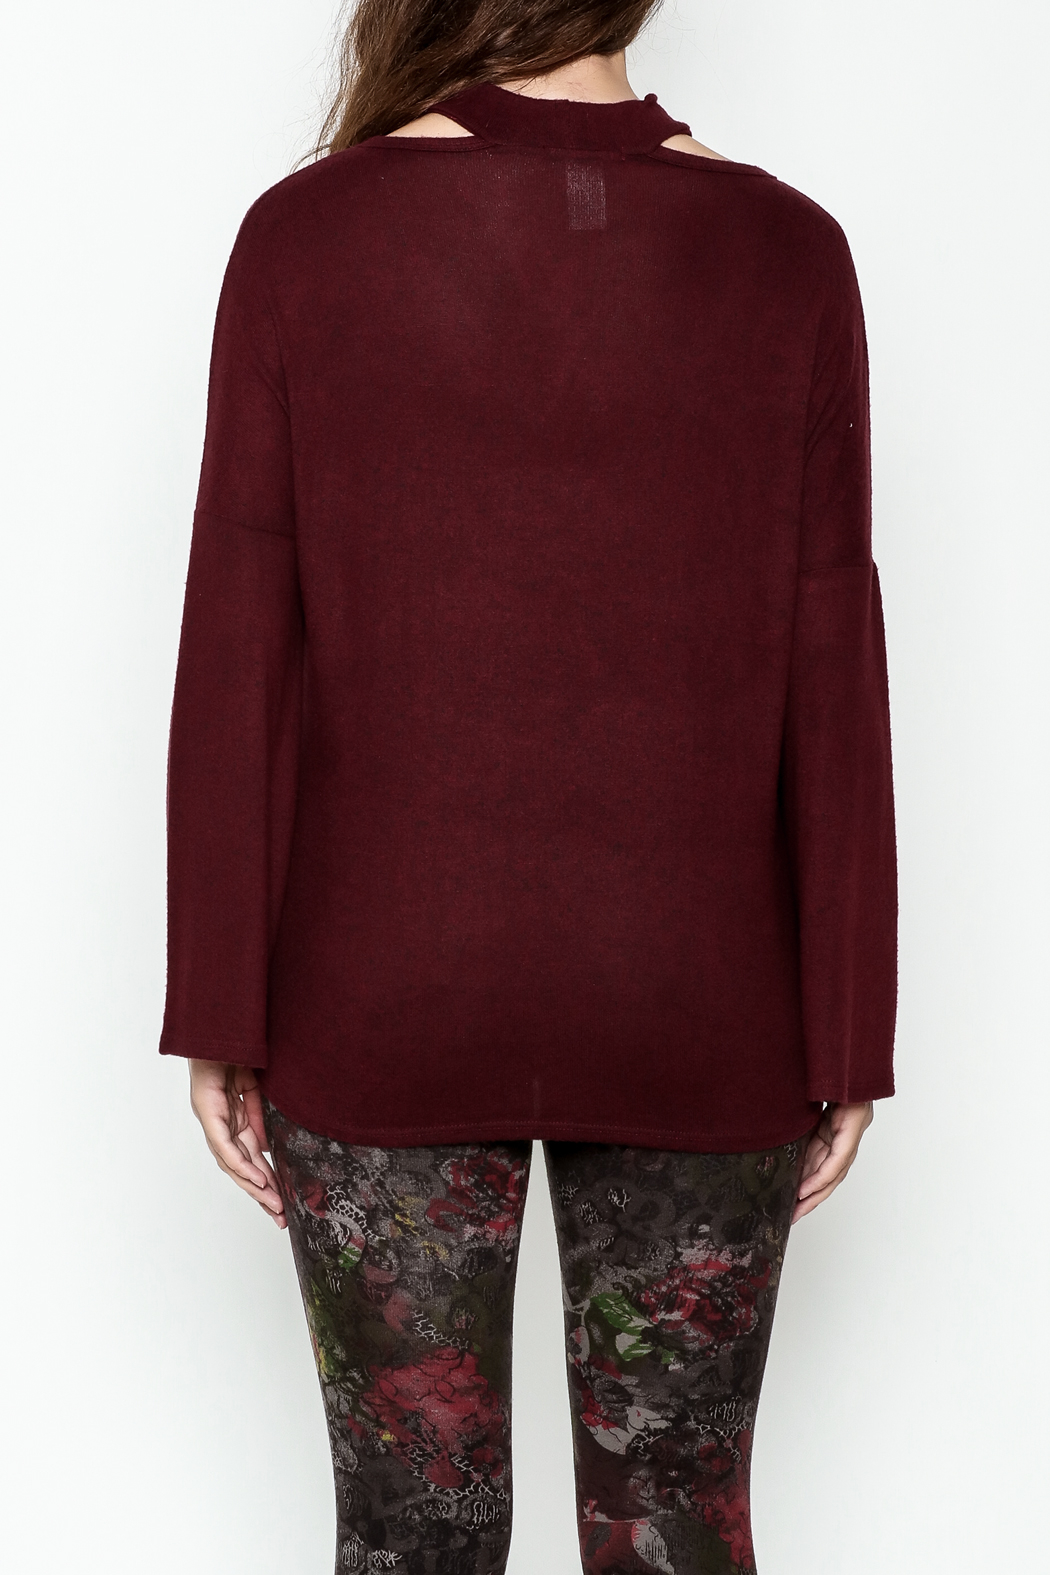 Silver Gate Burgundy Crisscross Top - Back Cropped Image